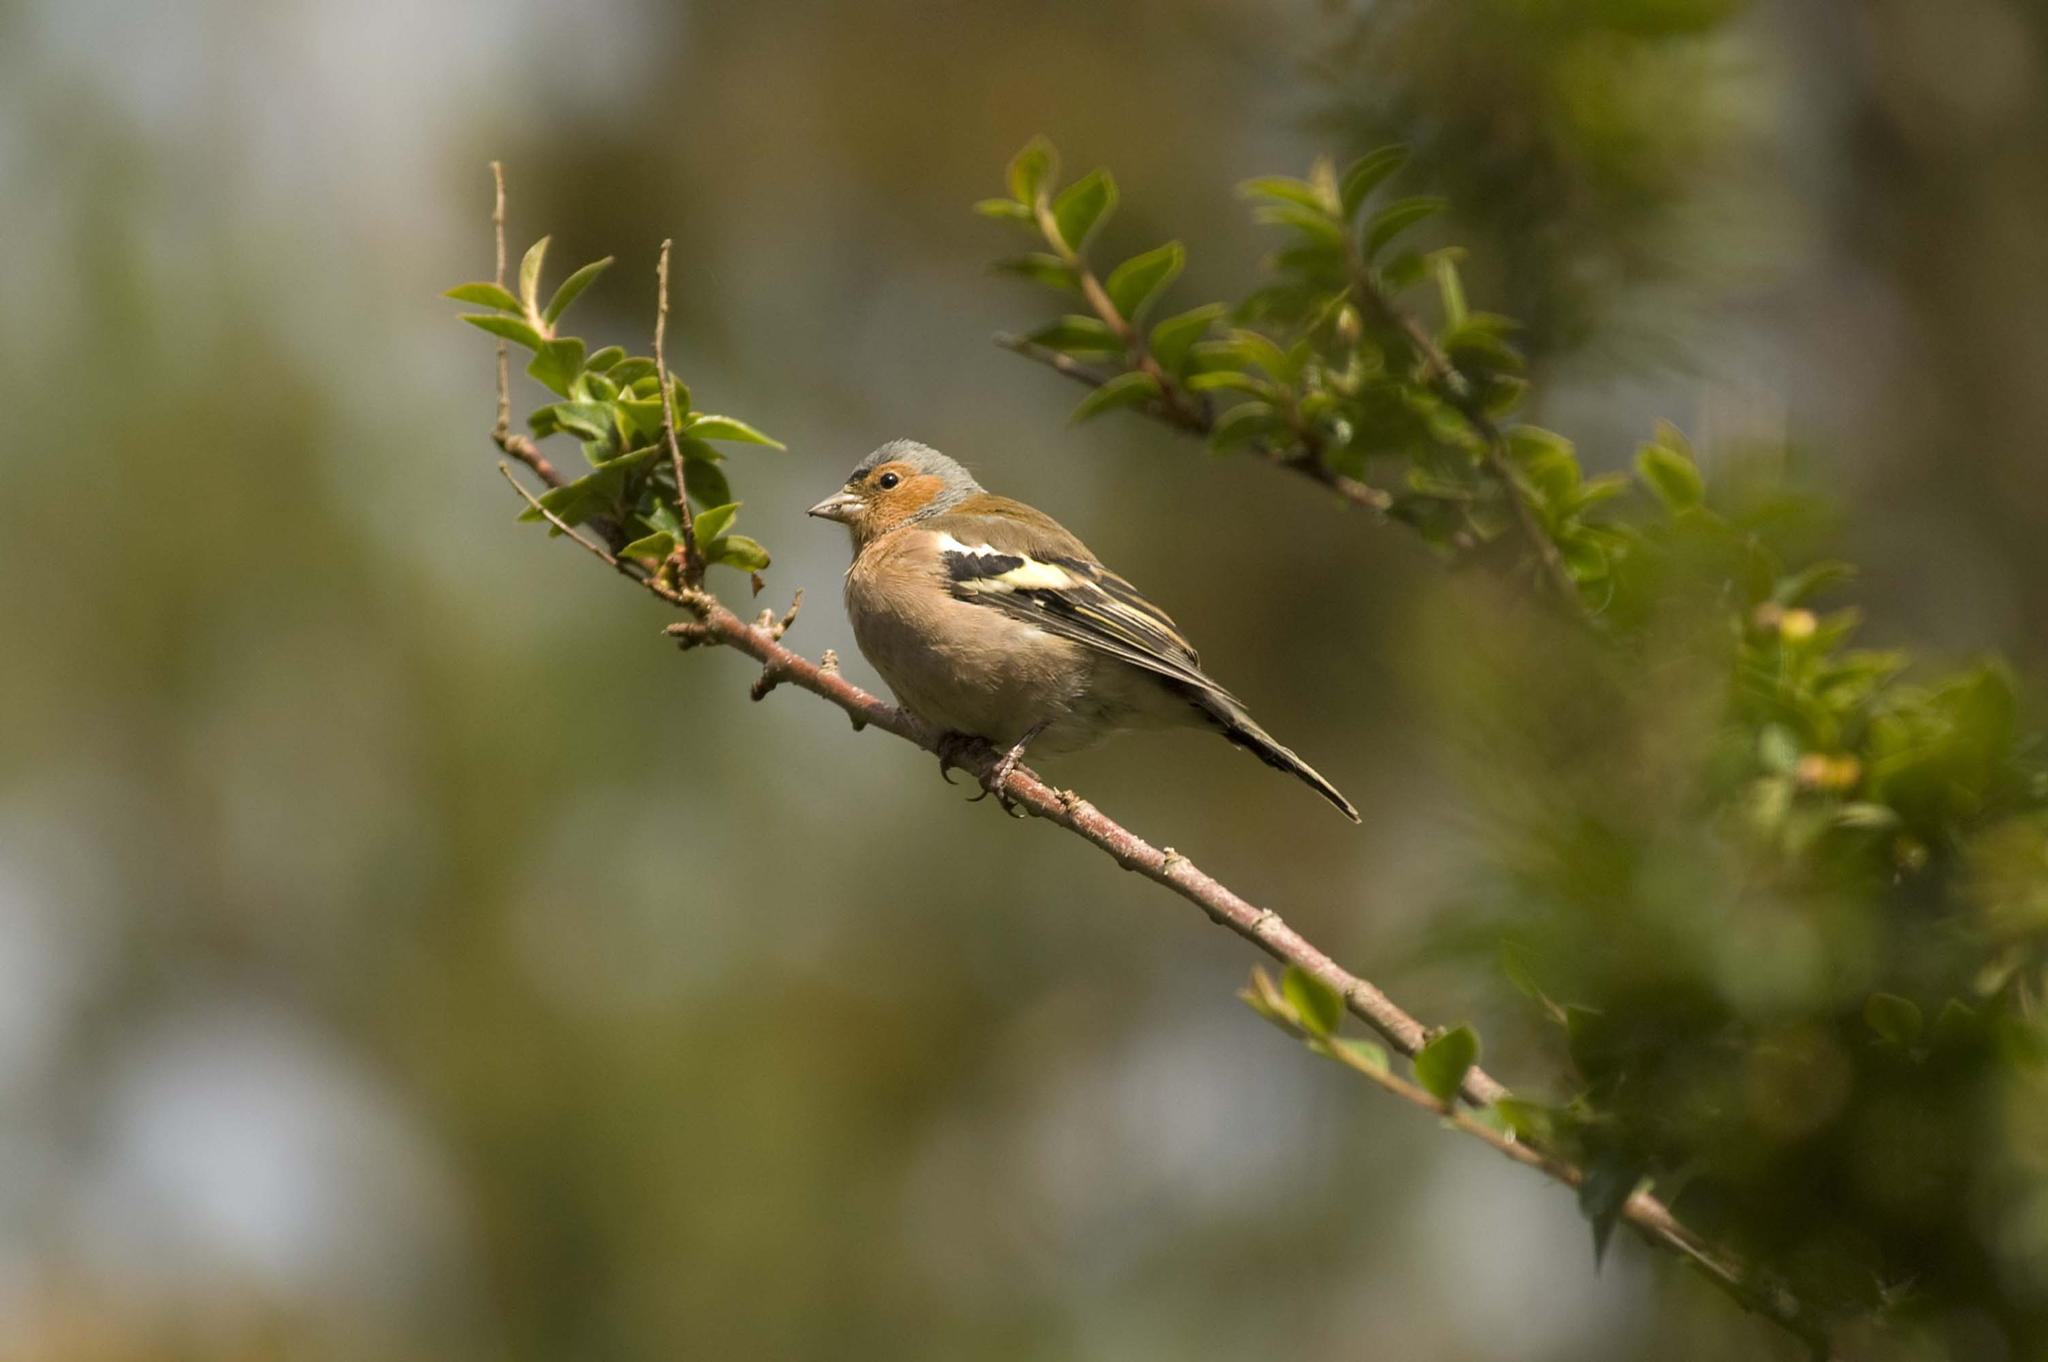 Chaffinch by leslie.mcbeath